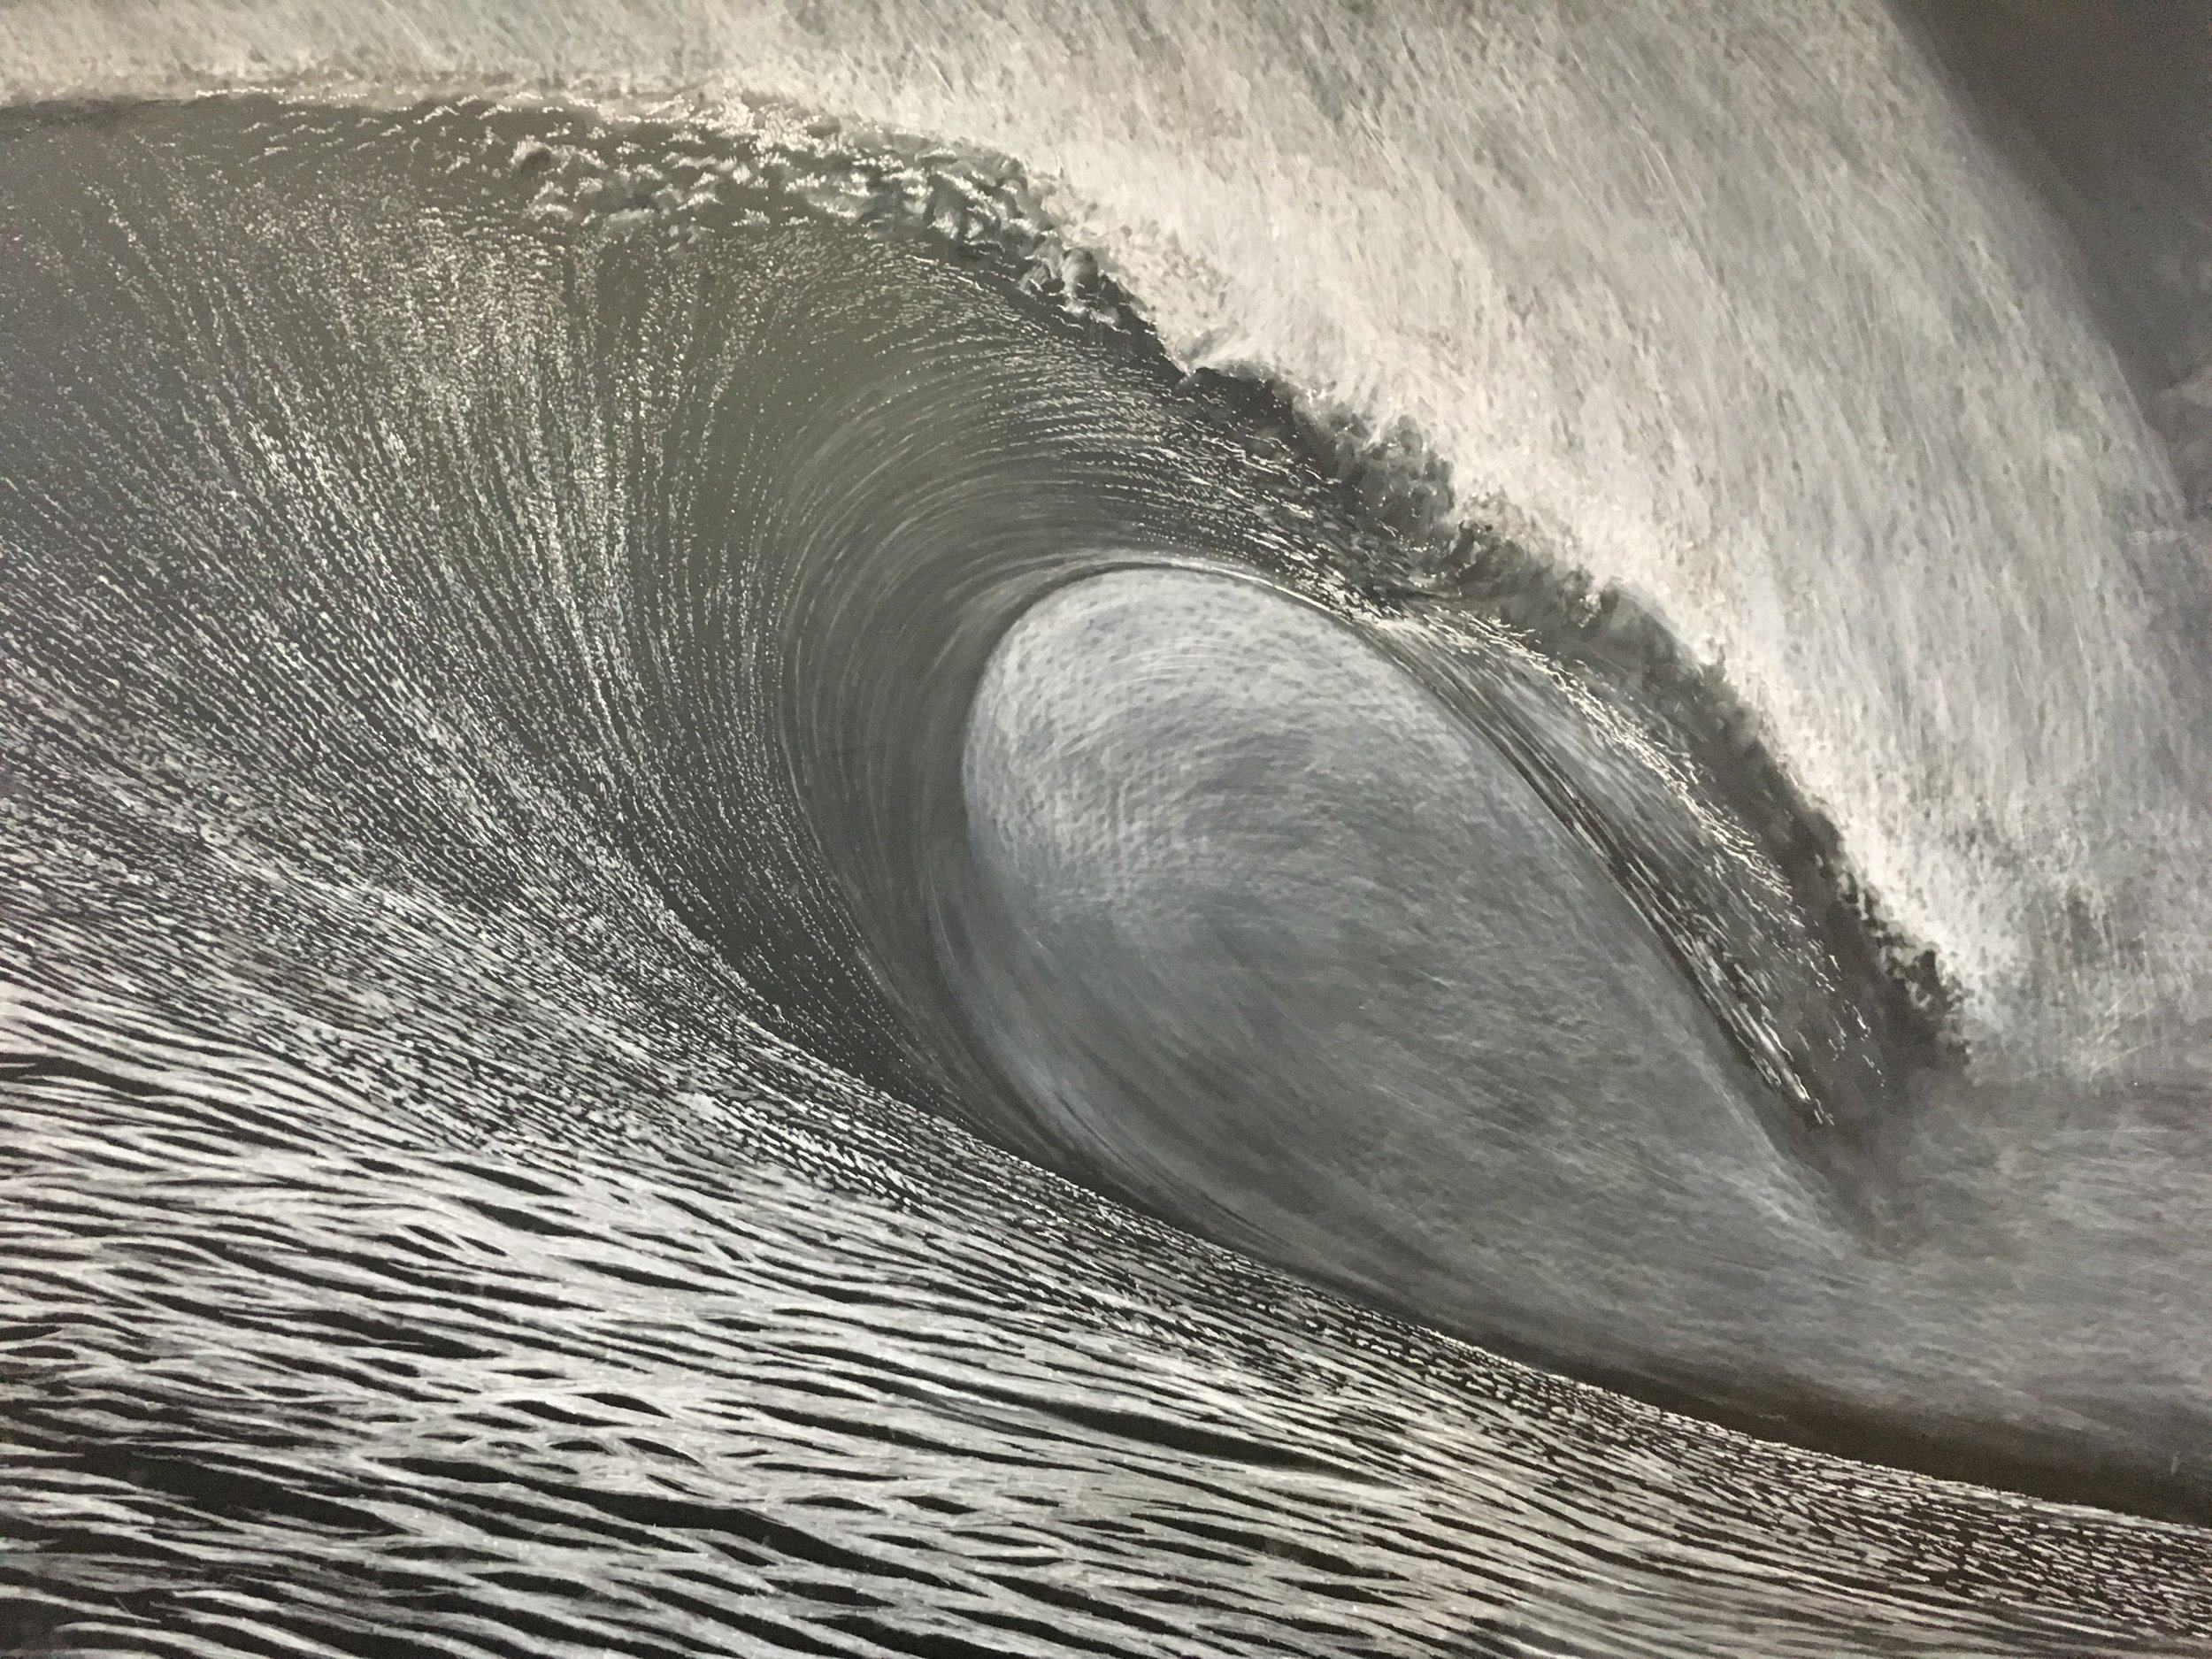 """Great Wave    conte on foamcore  48"""" x 64""""  2017  (Available as an archival digital giclee print on cotton rag paper, 16"""" x 20"""", edition of 50)  (original sold)"""